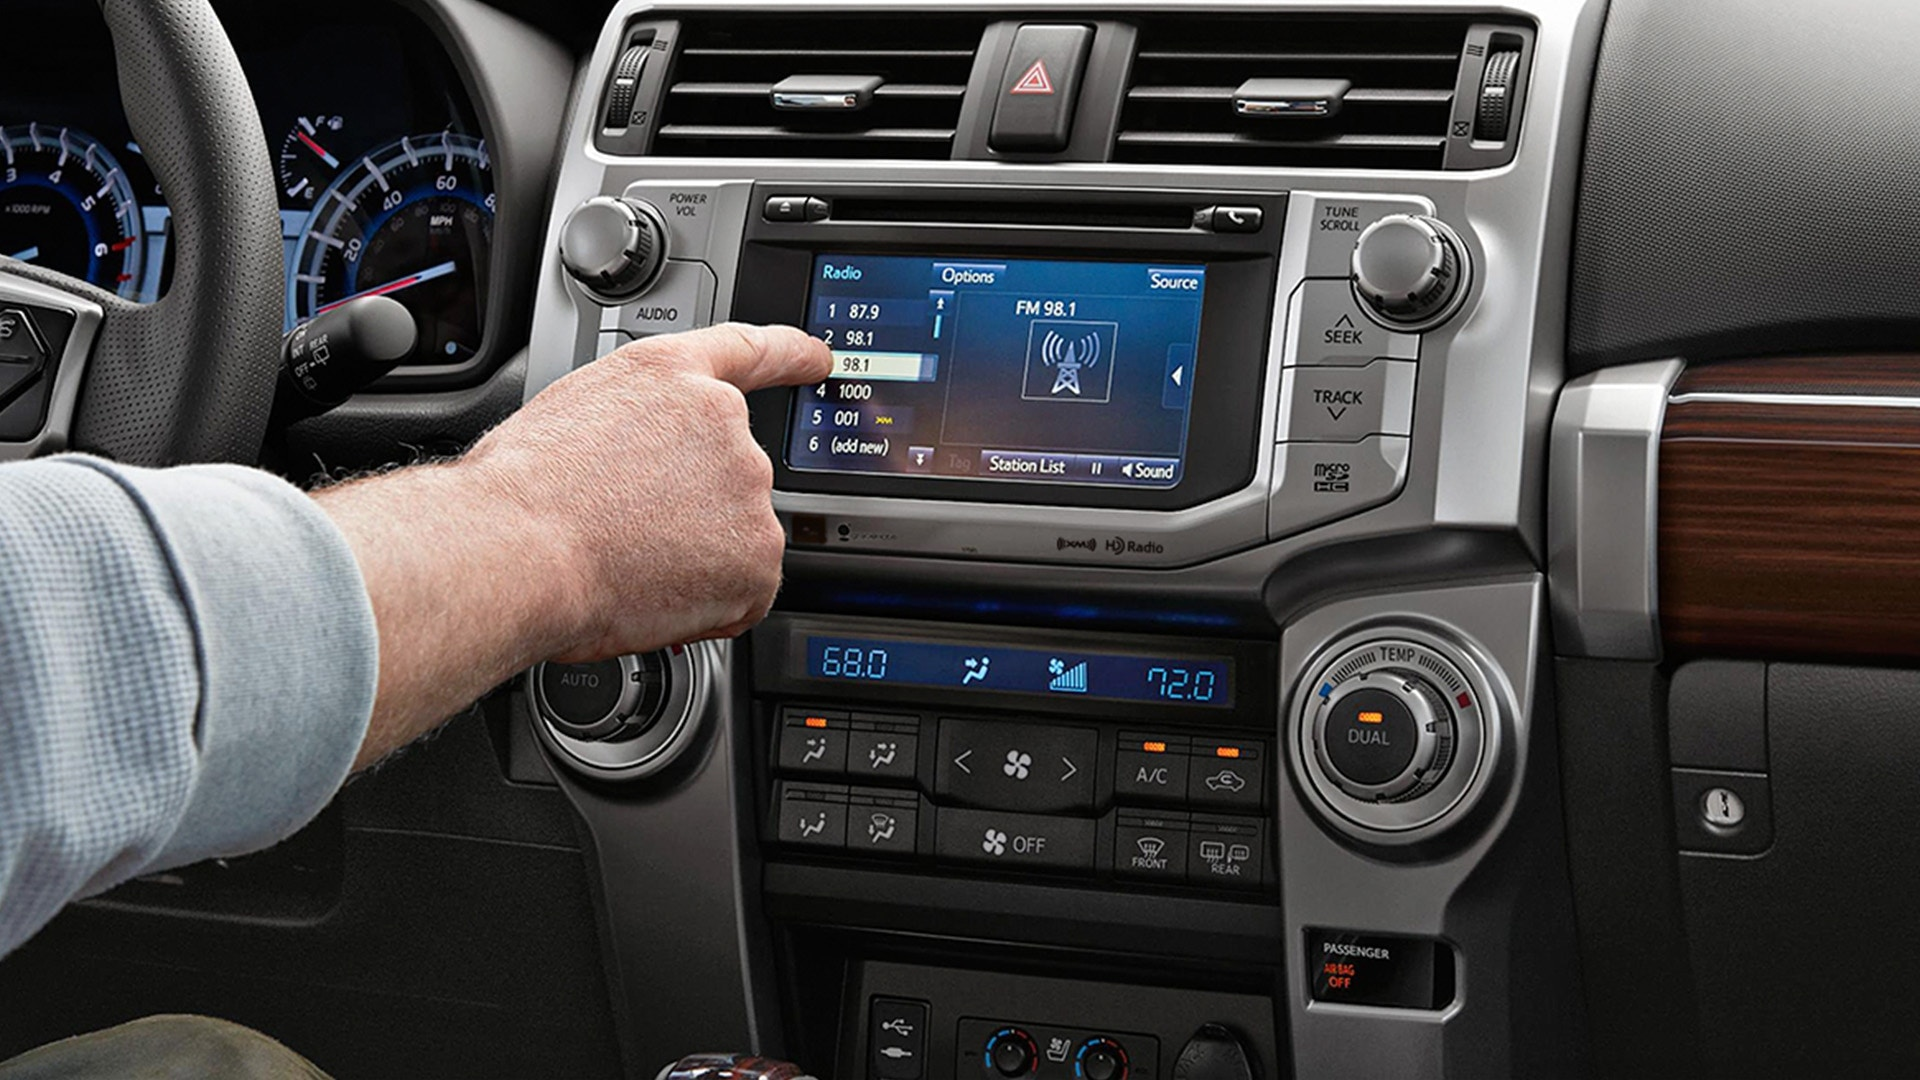 Touchscreen Display in the 2019 4Runner